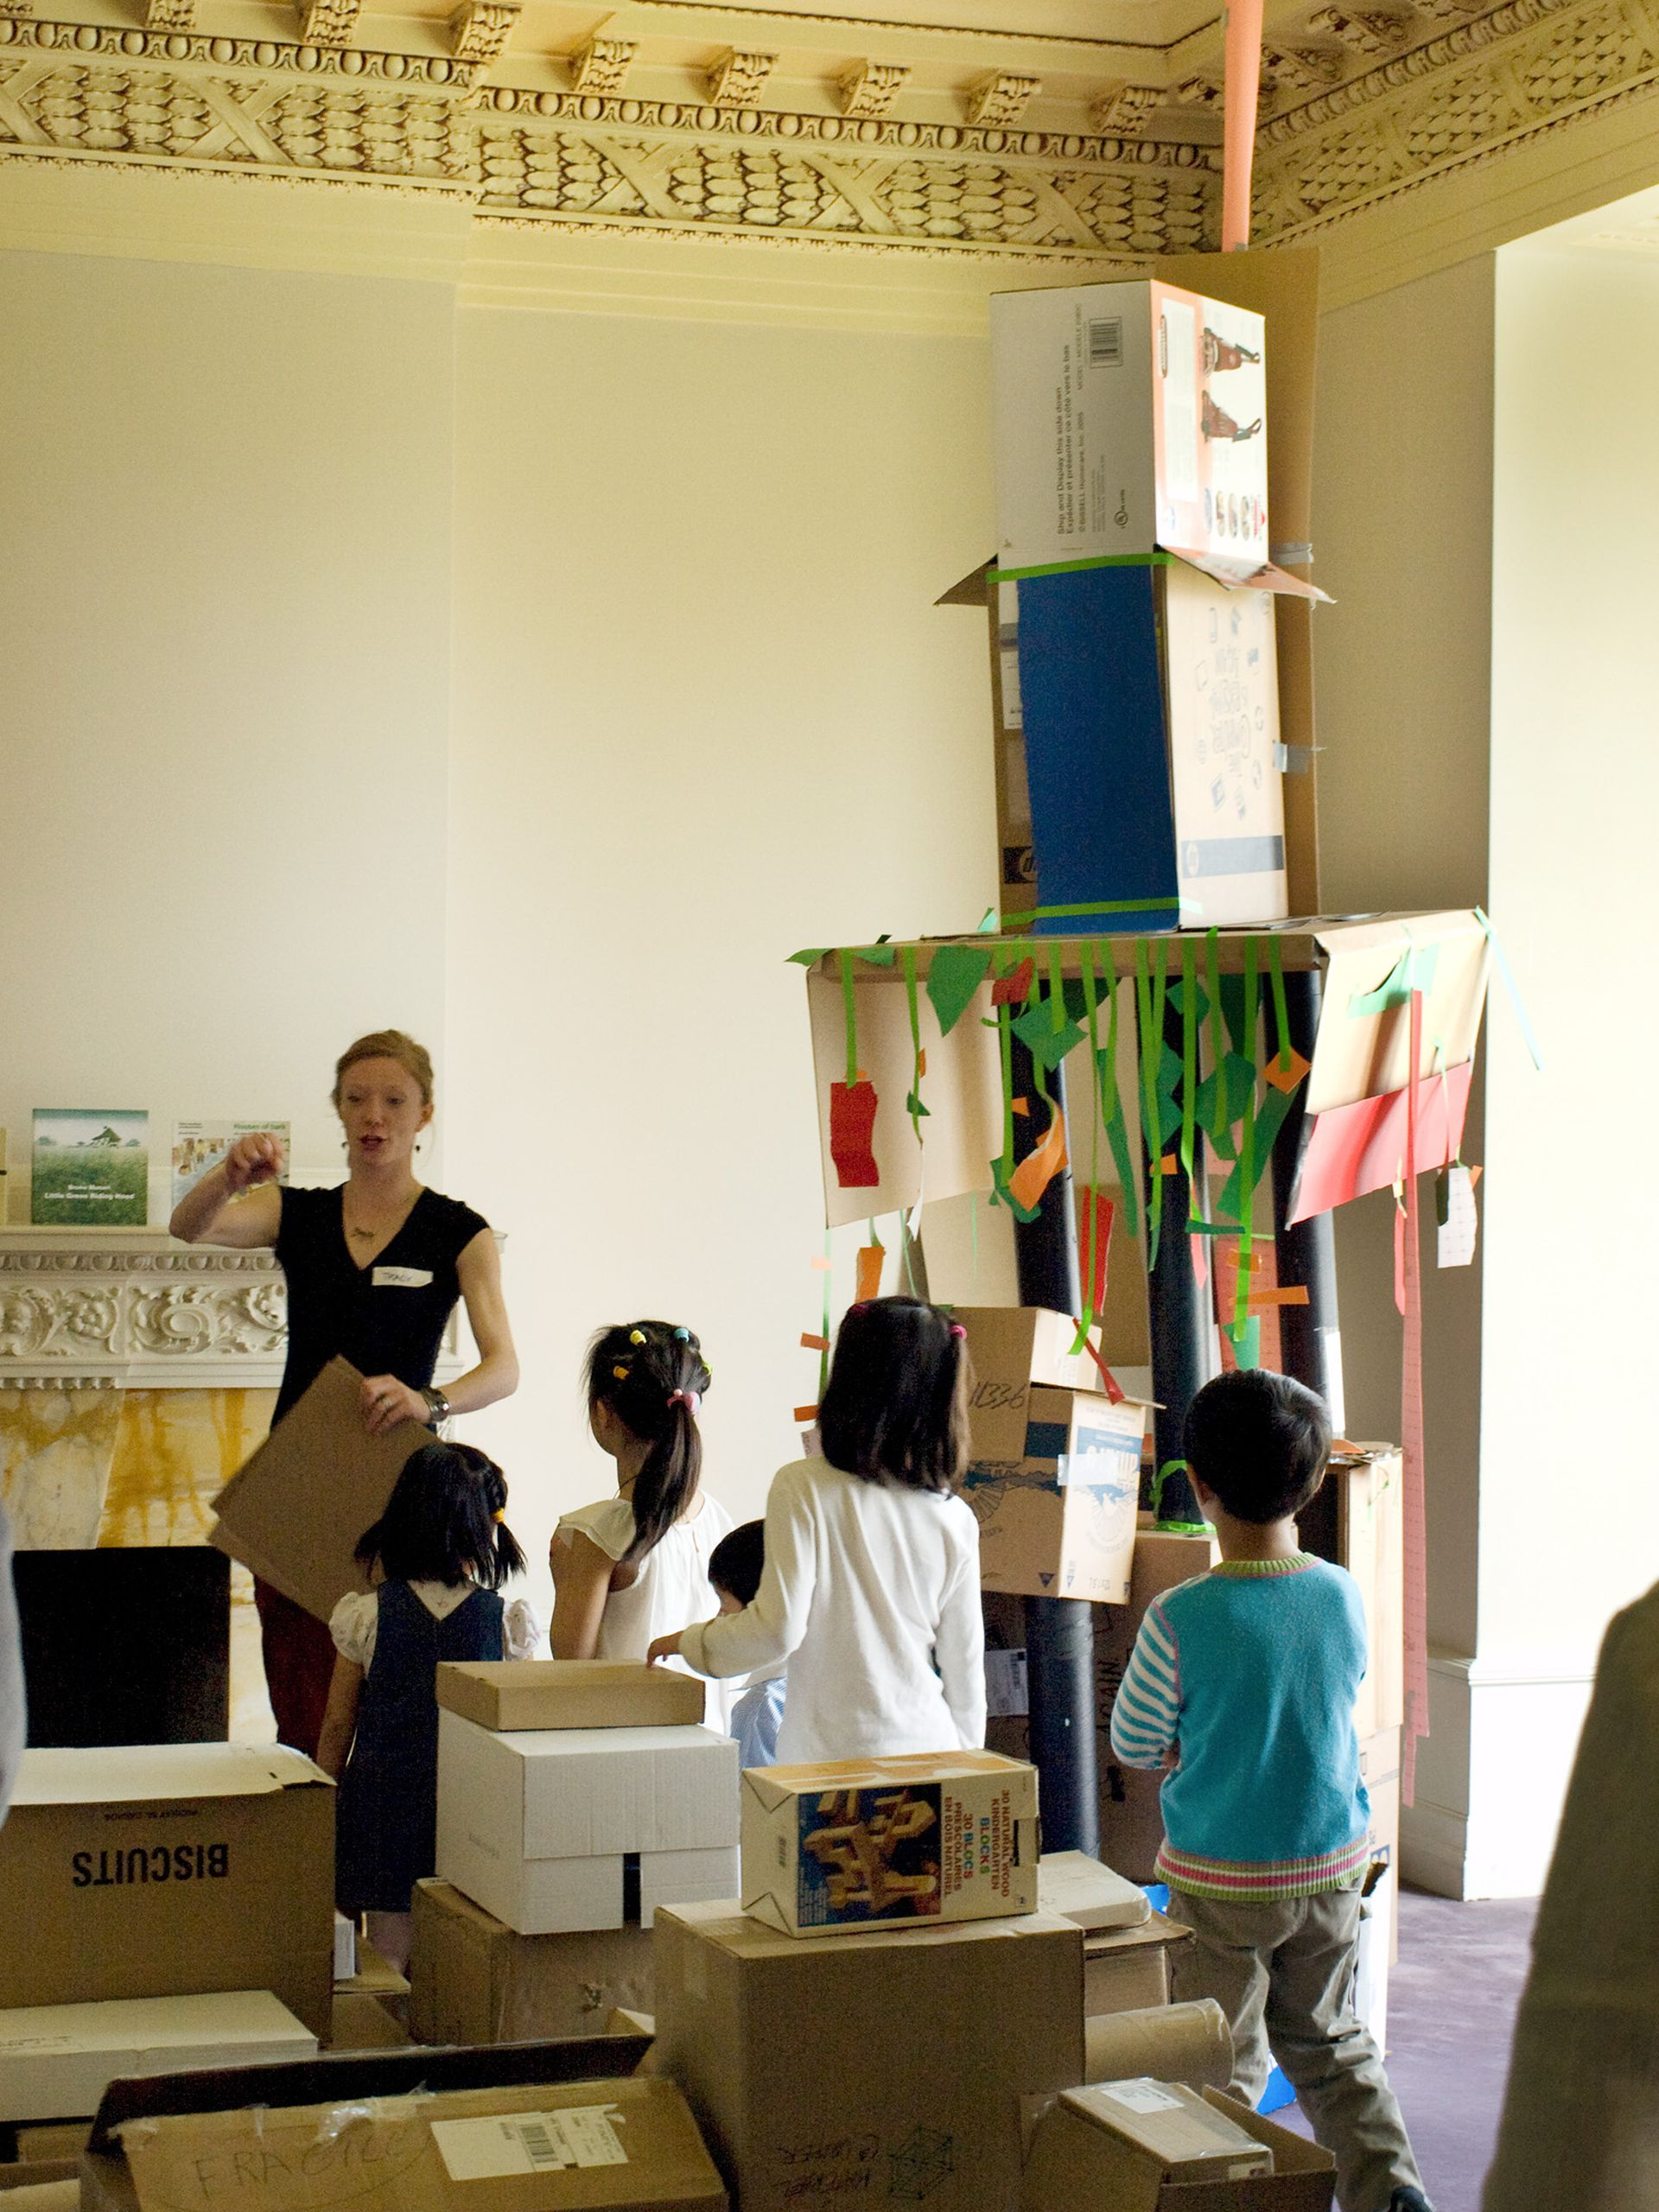 Cardboard Houses: Exploration of Do-It-Yourself